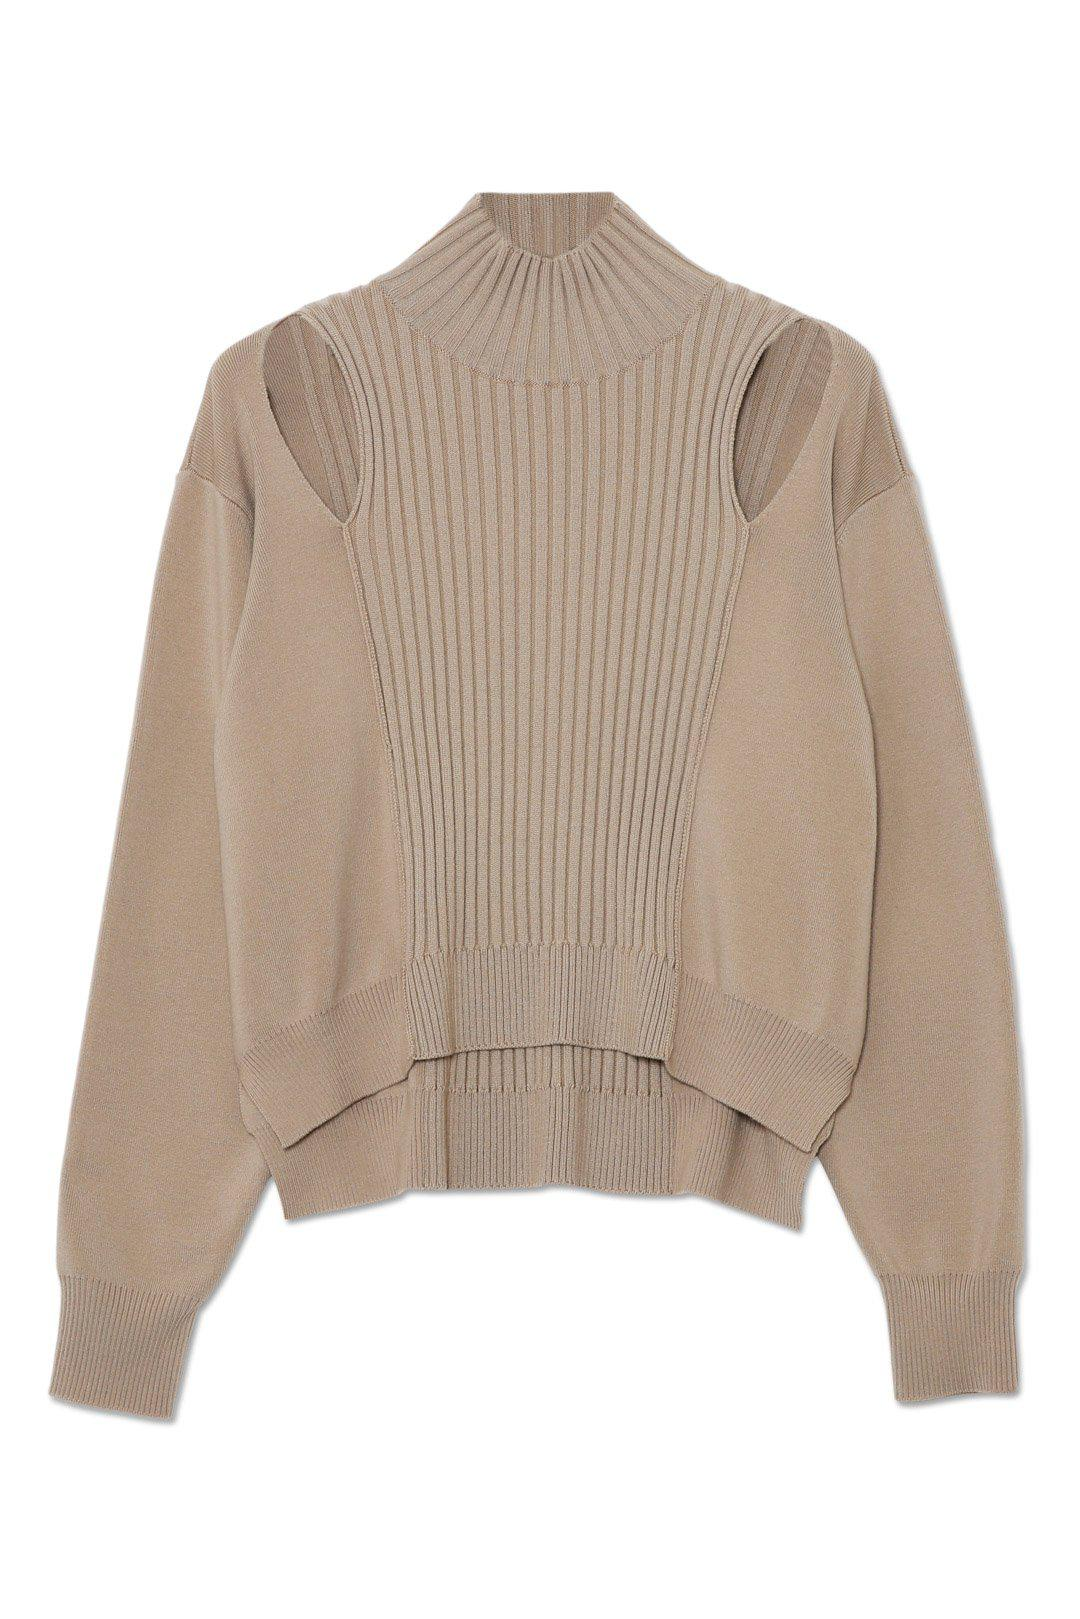 Yvette Recycled Knit Turtleneck